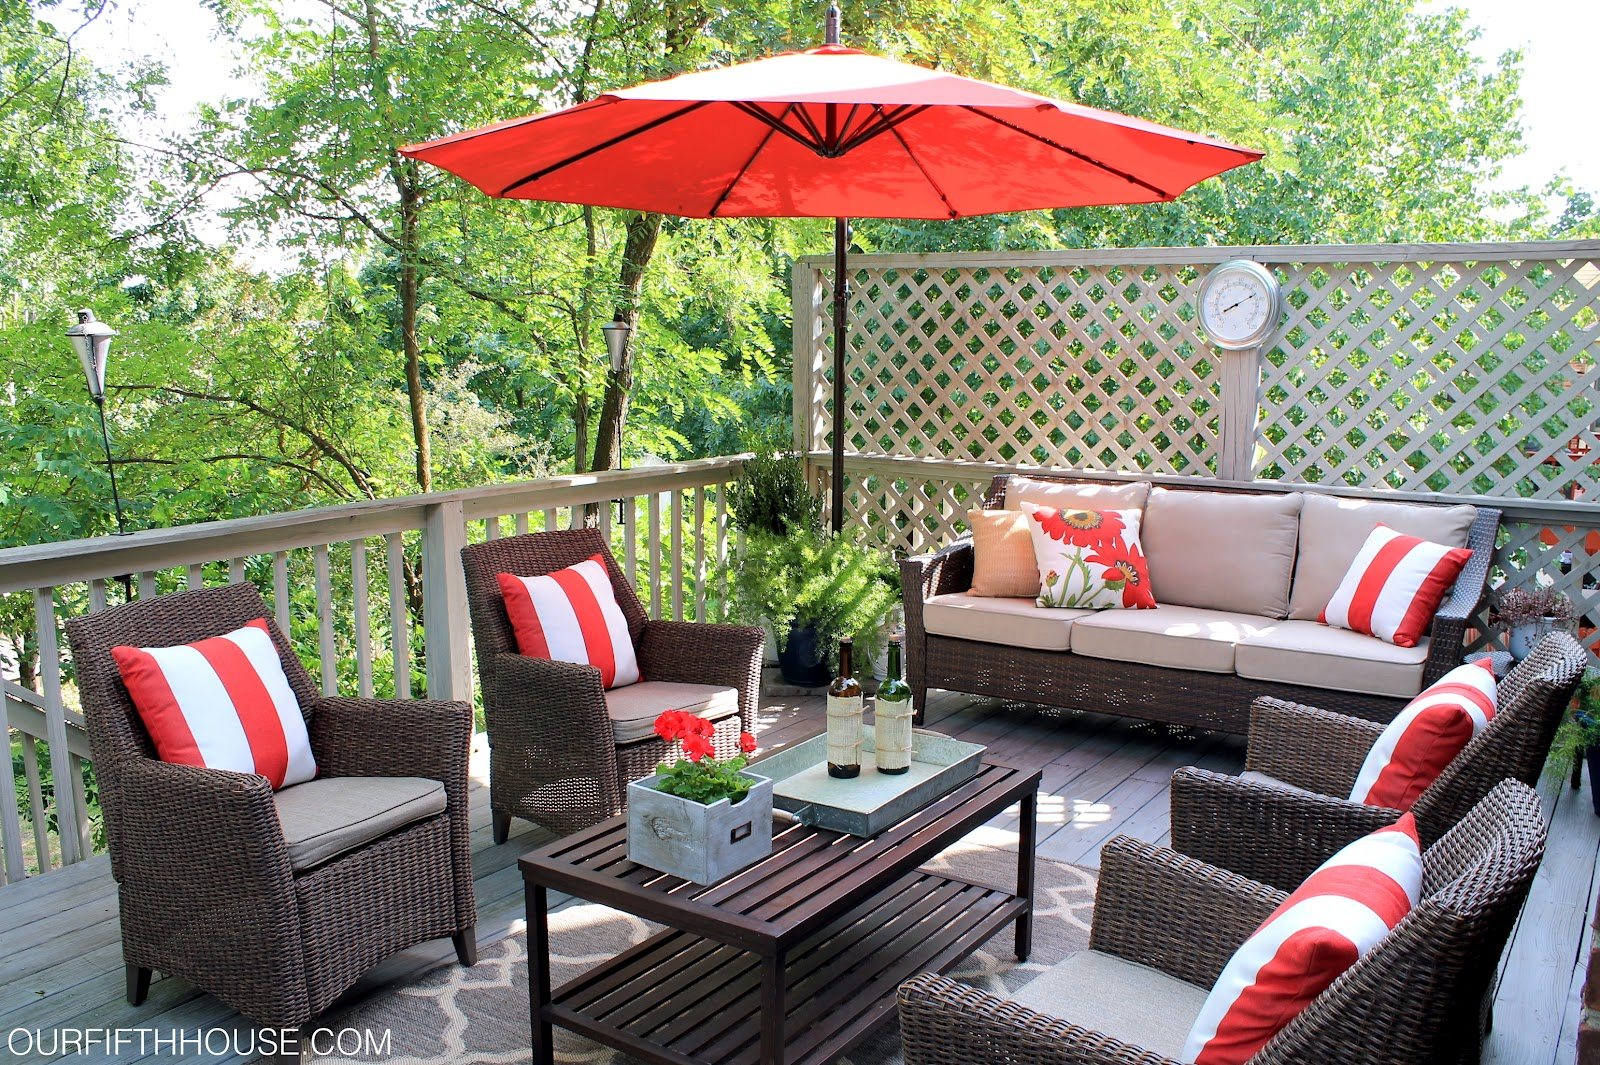 Outdoor living deck updates our fifth house for Outdoor porch furniture